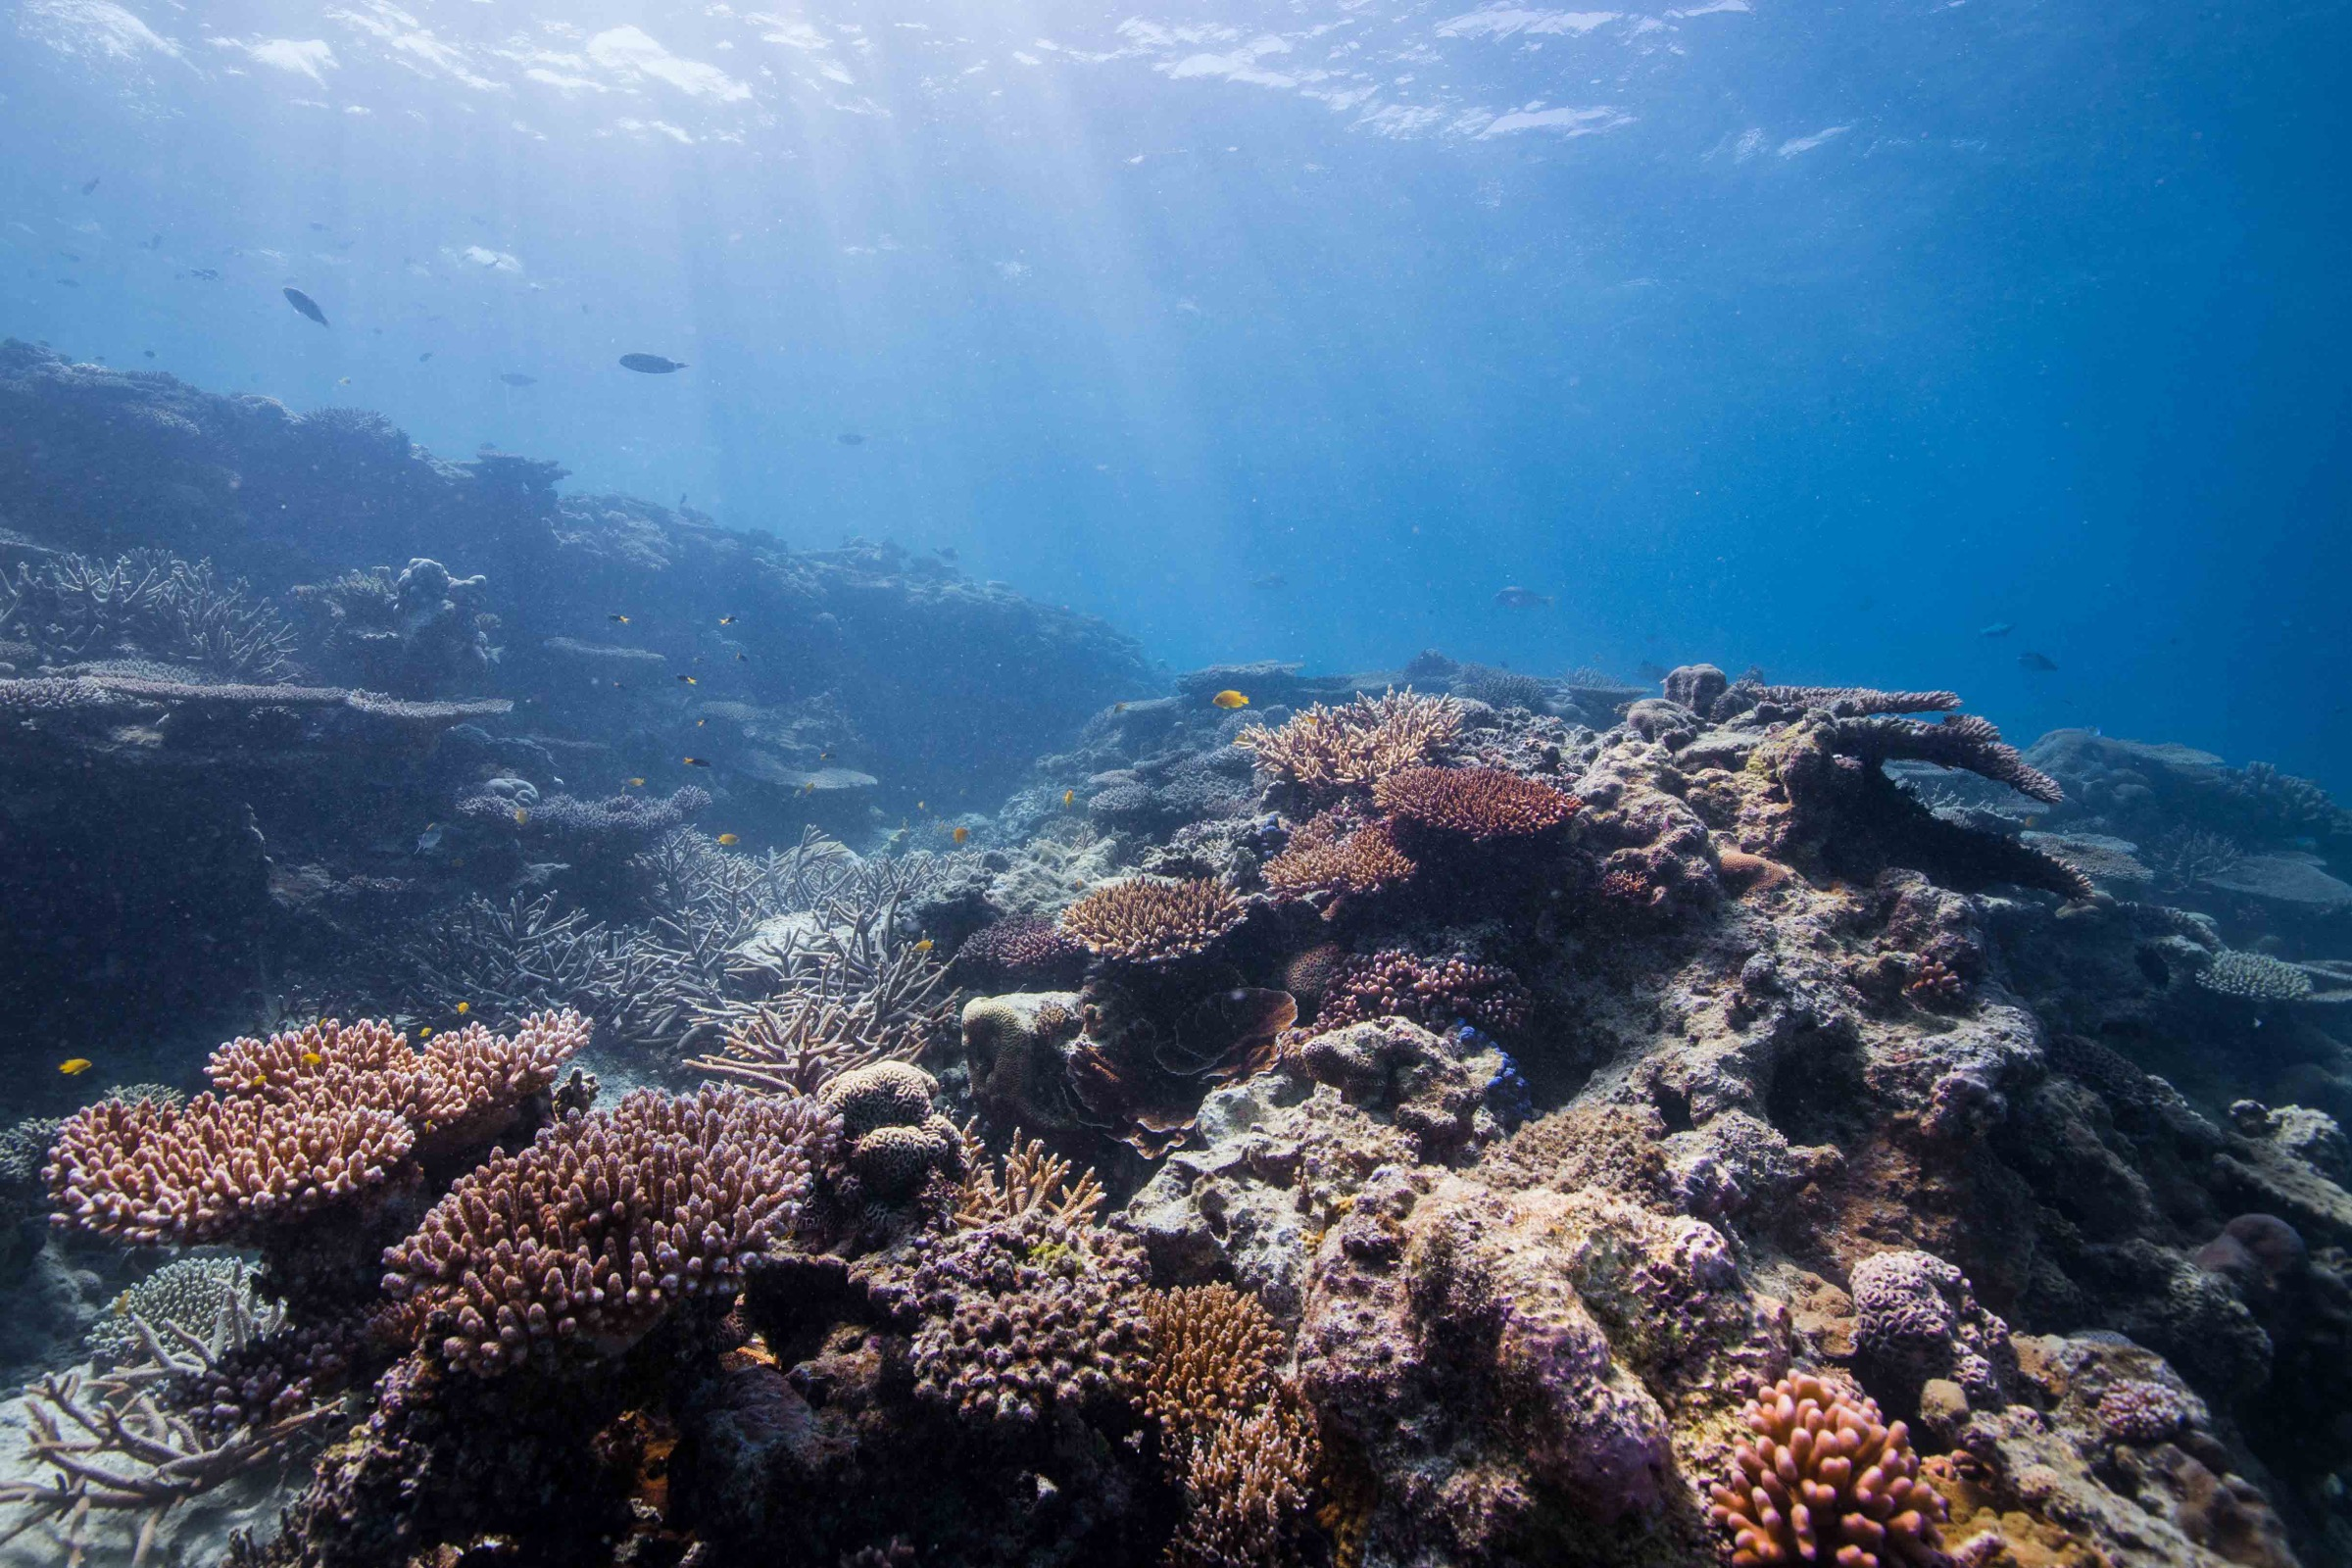 Corals create the all-important structure on which countless ocean creatures depend.